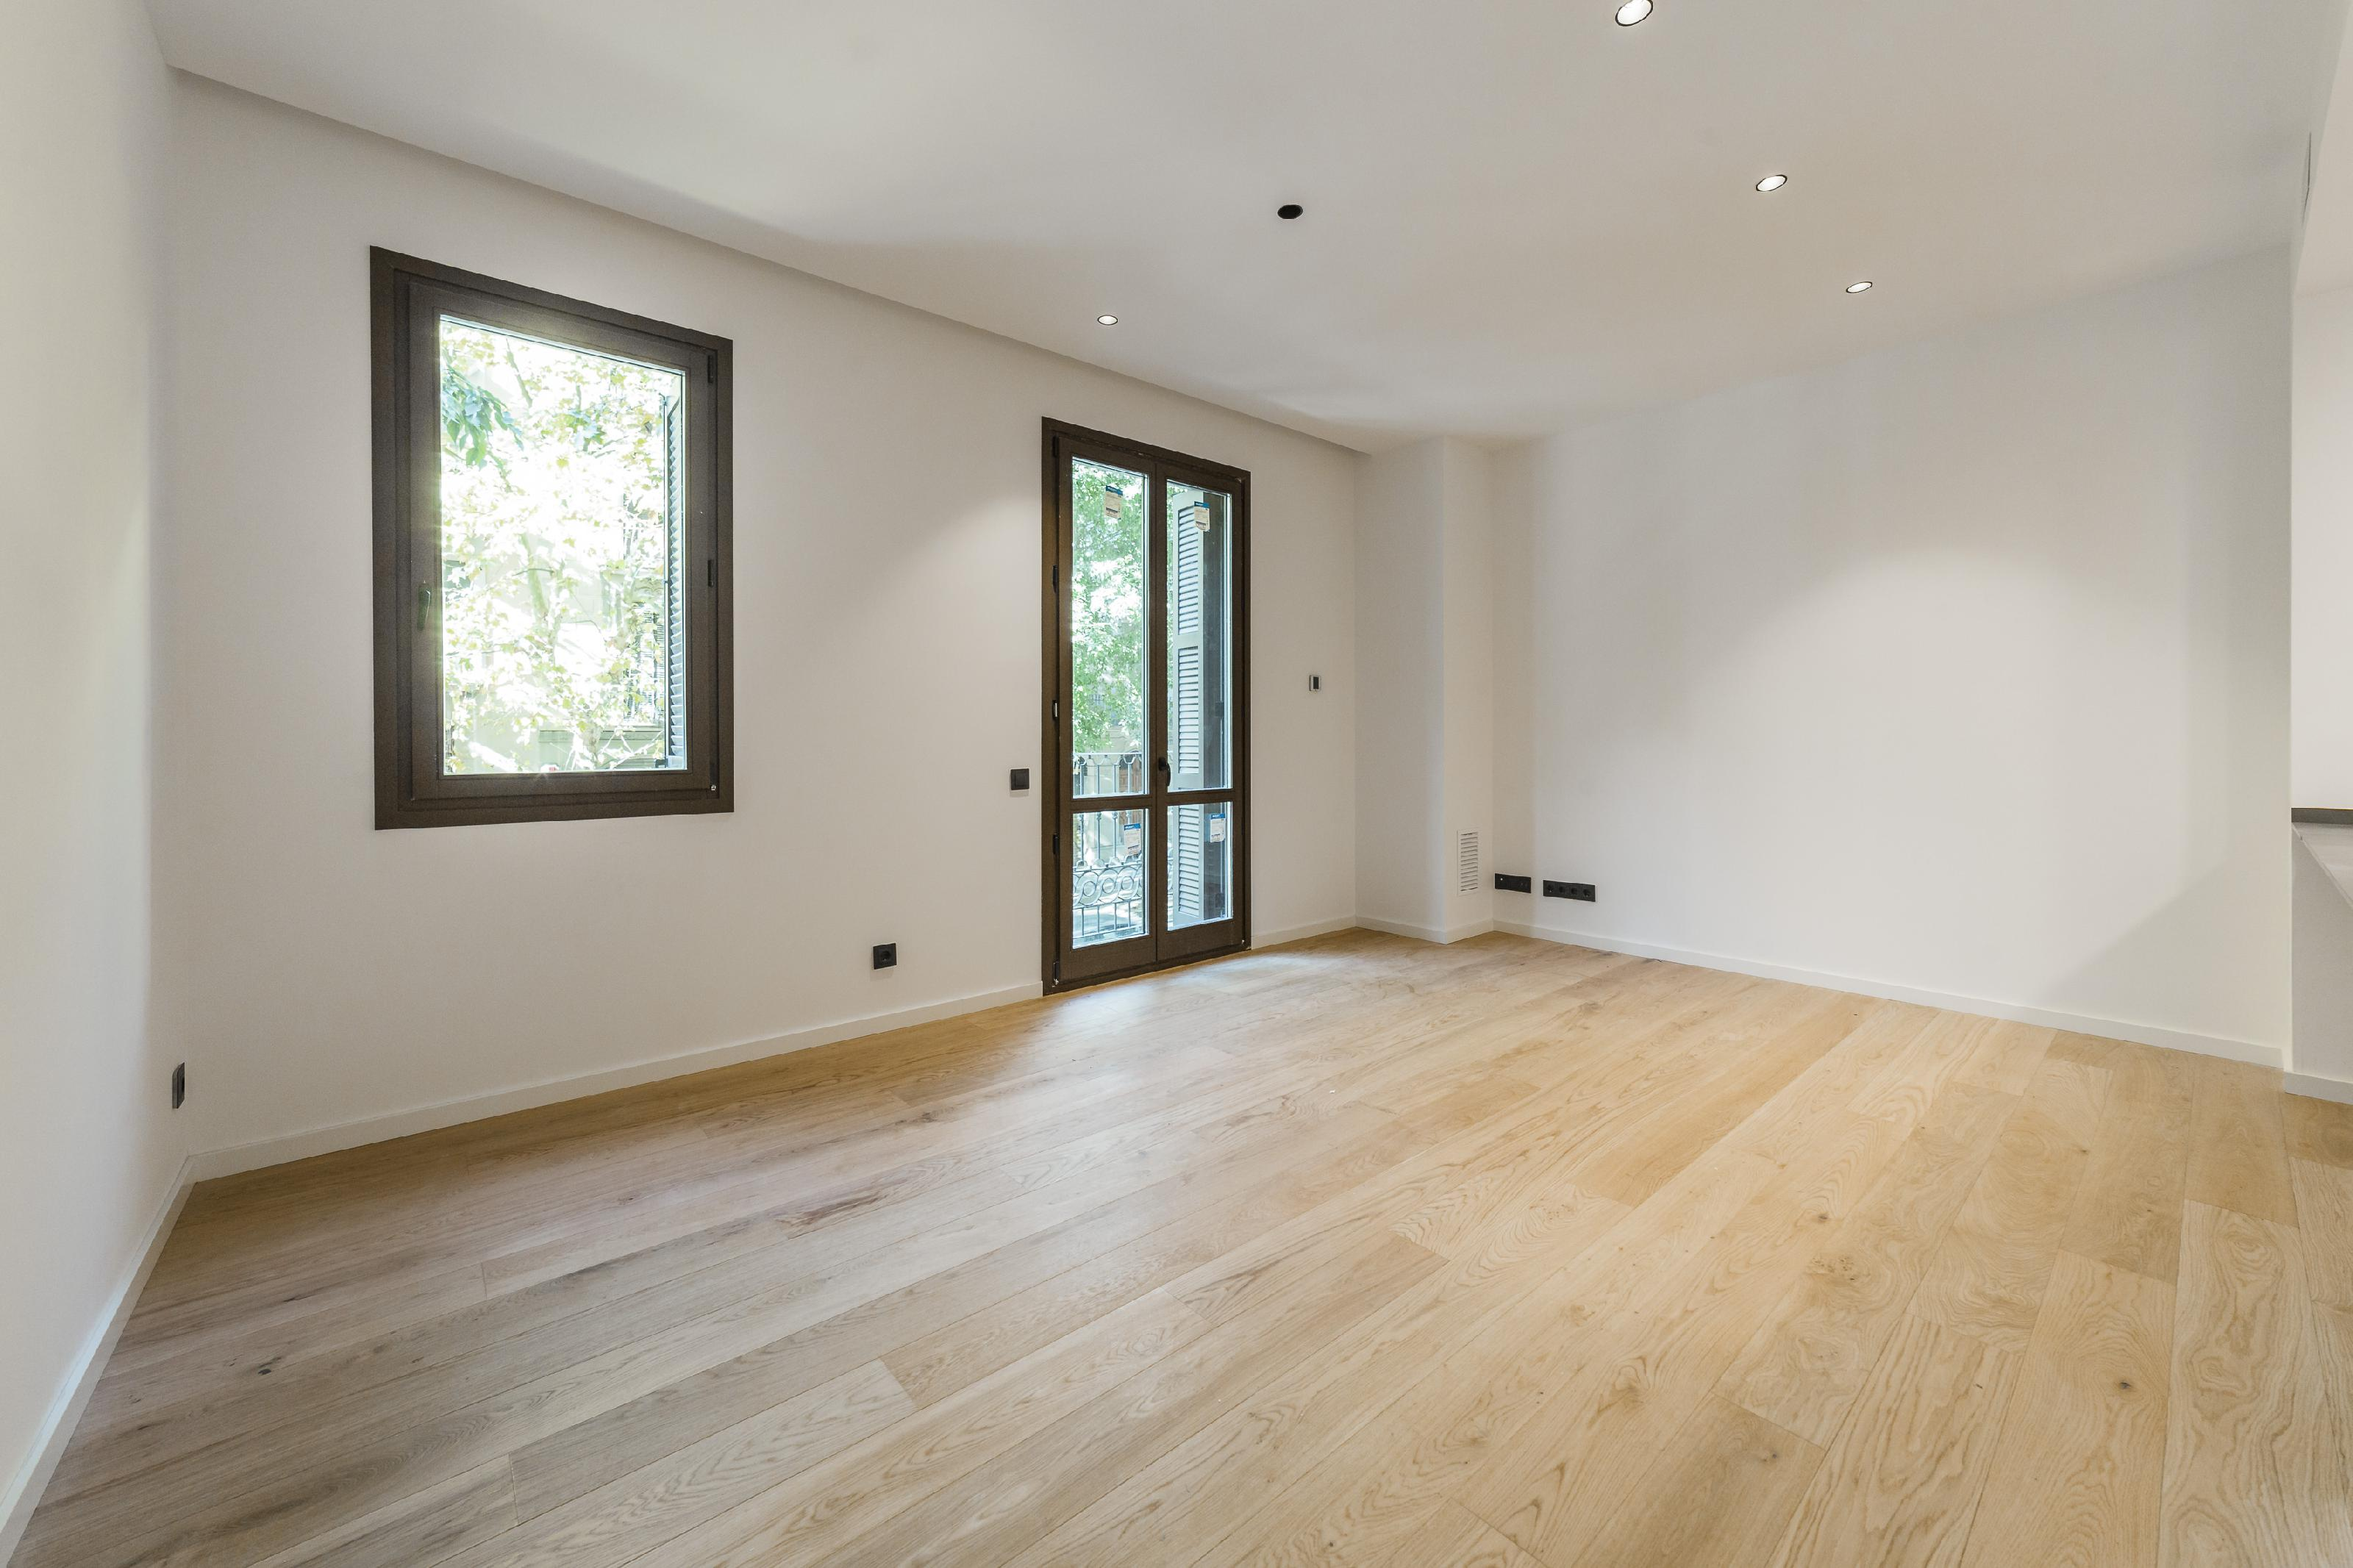 182176 Apartment for sale in Eixample, Old Left Eixample 9